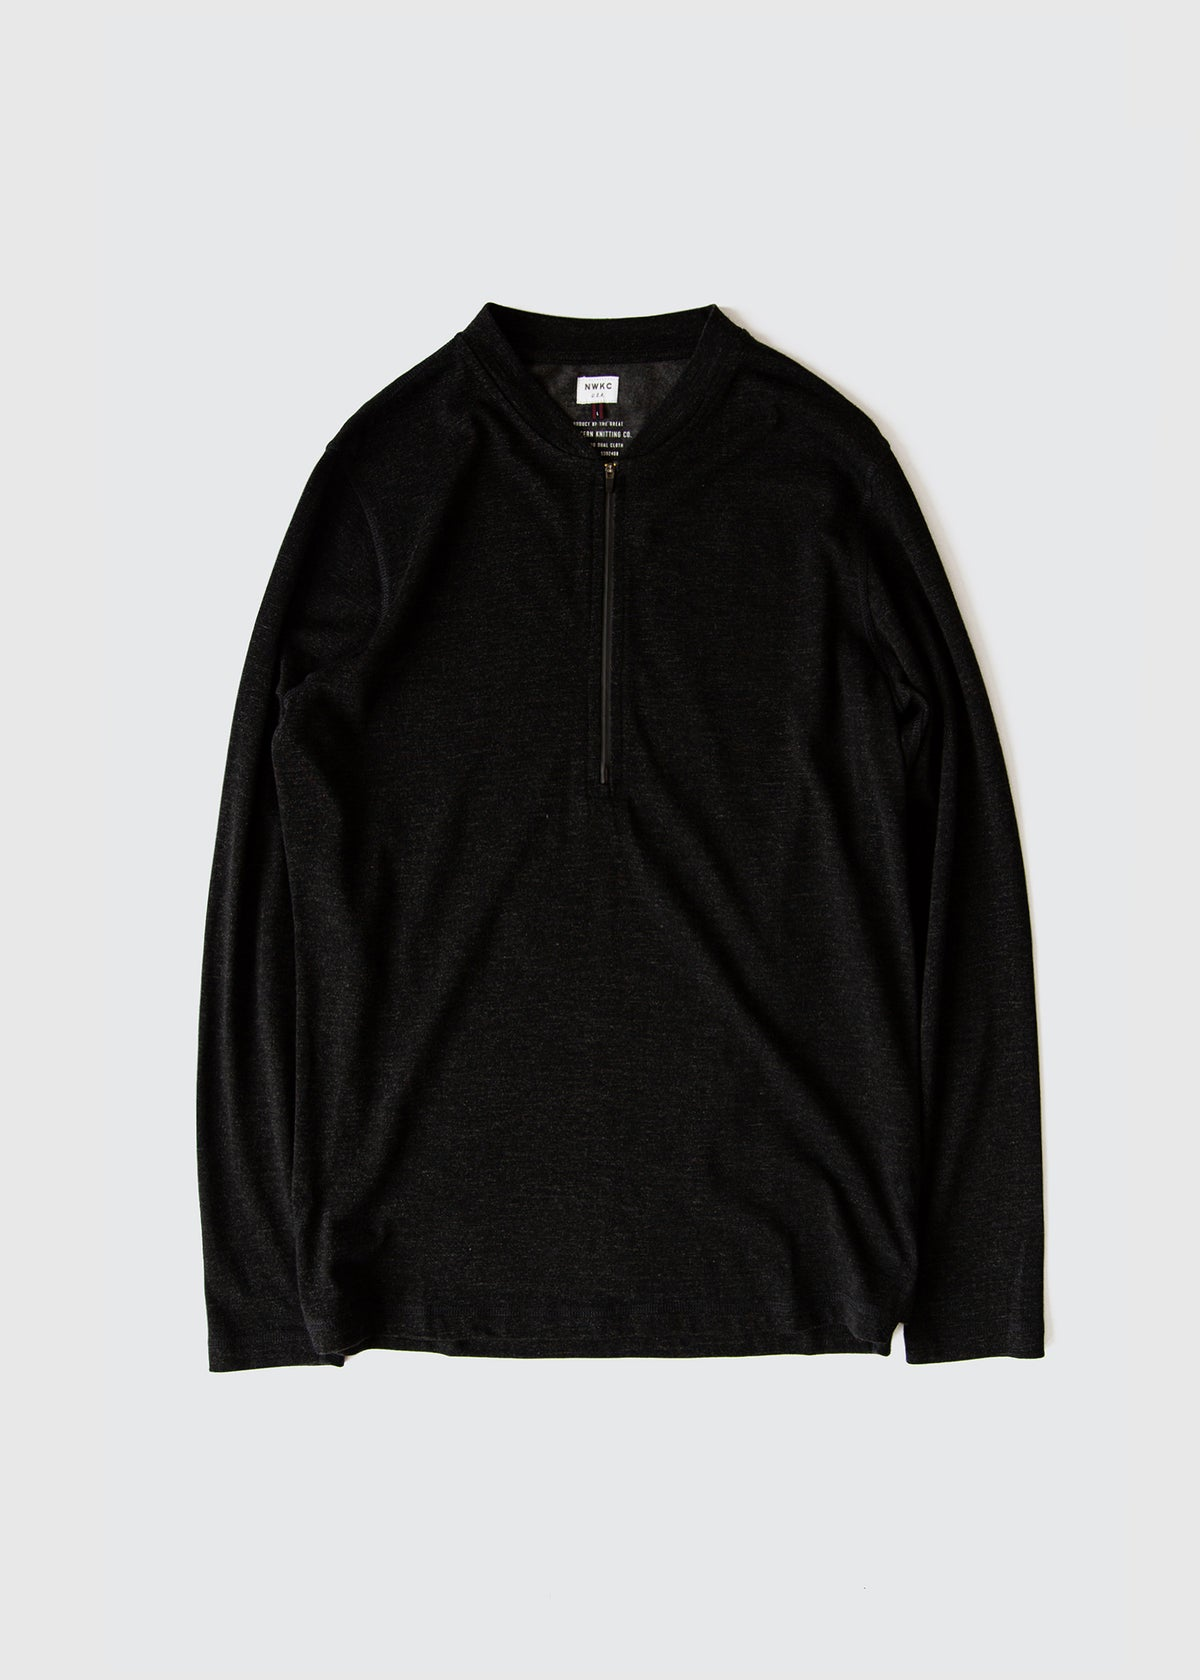 106 - 1/3 ZIP VARSITY - BLACK - Wilson & Willy's - MPLS Neighbor Goods